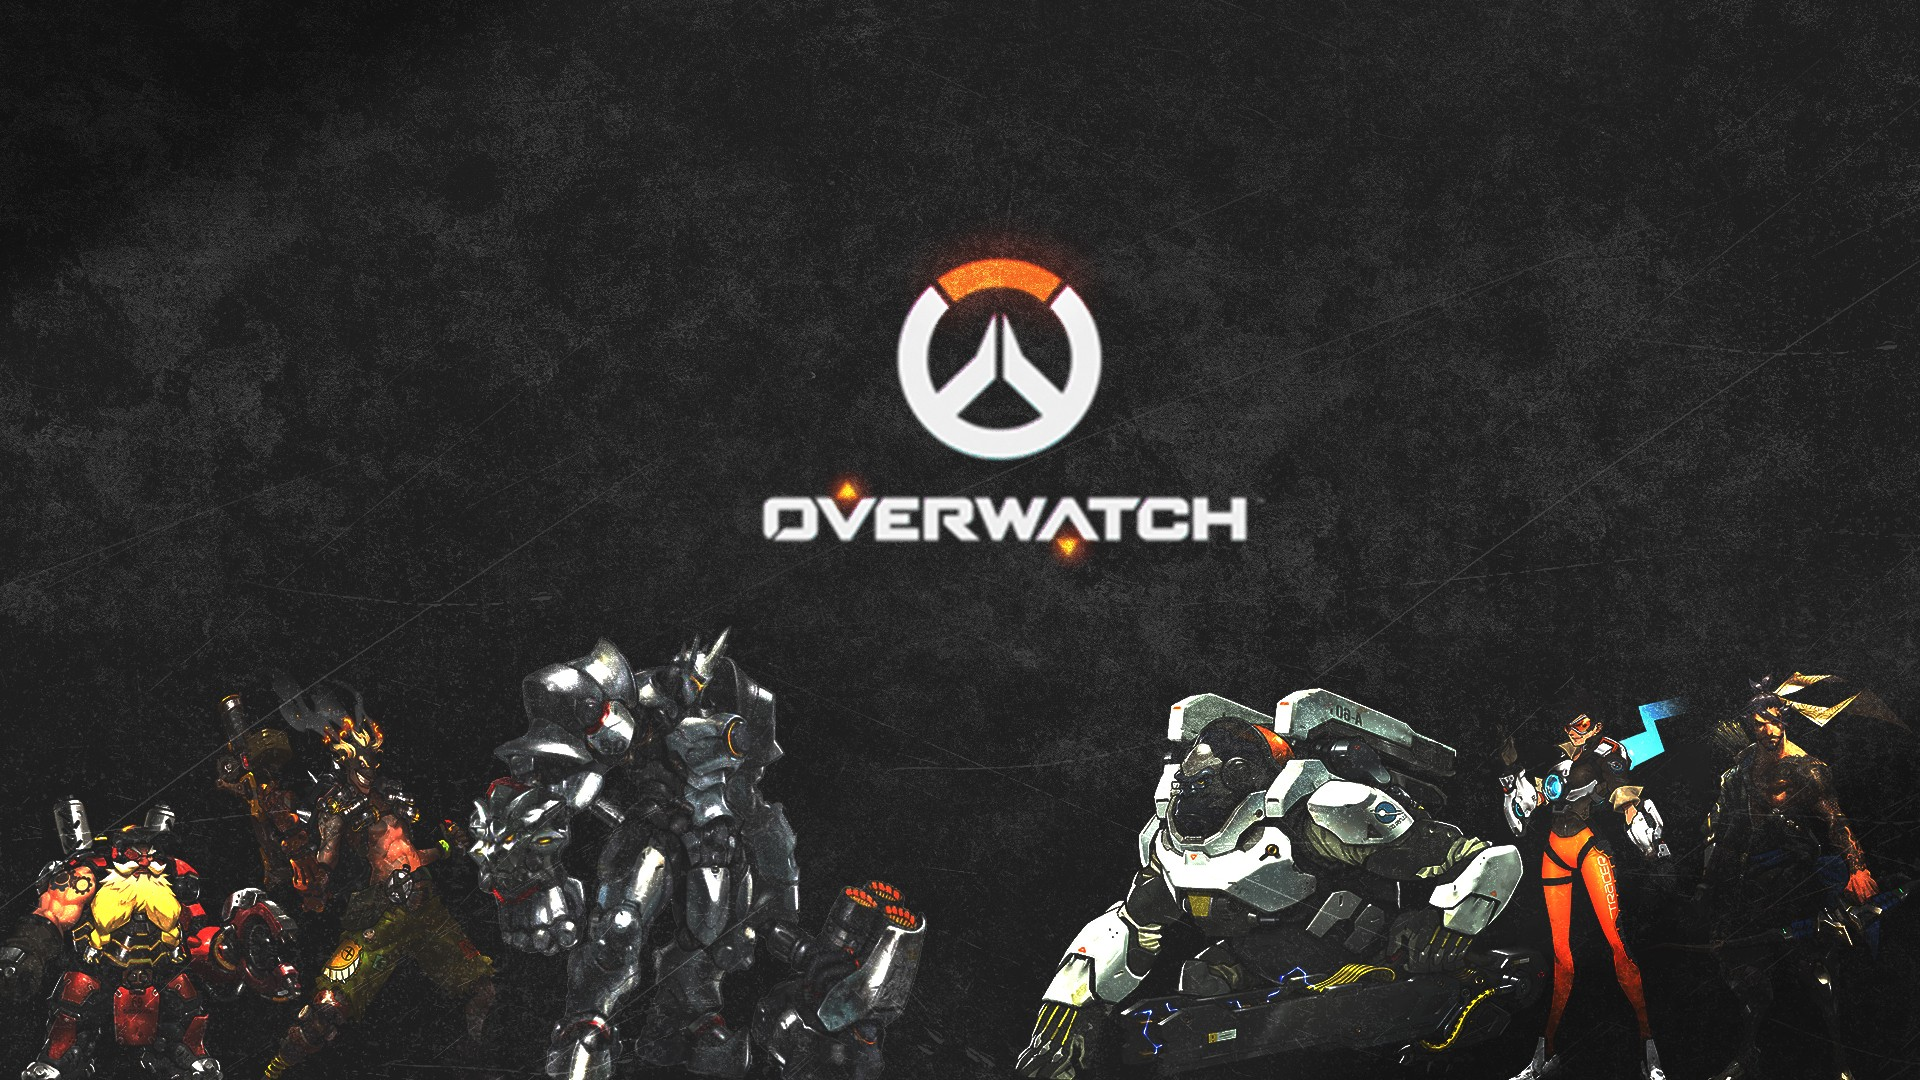 Dual Monitor Wallpaper Overwatch: Overwatch Wallpaper 1080p ·① Download Free Cool High